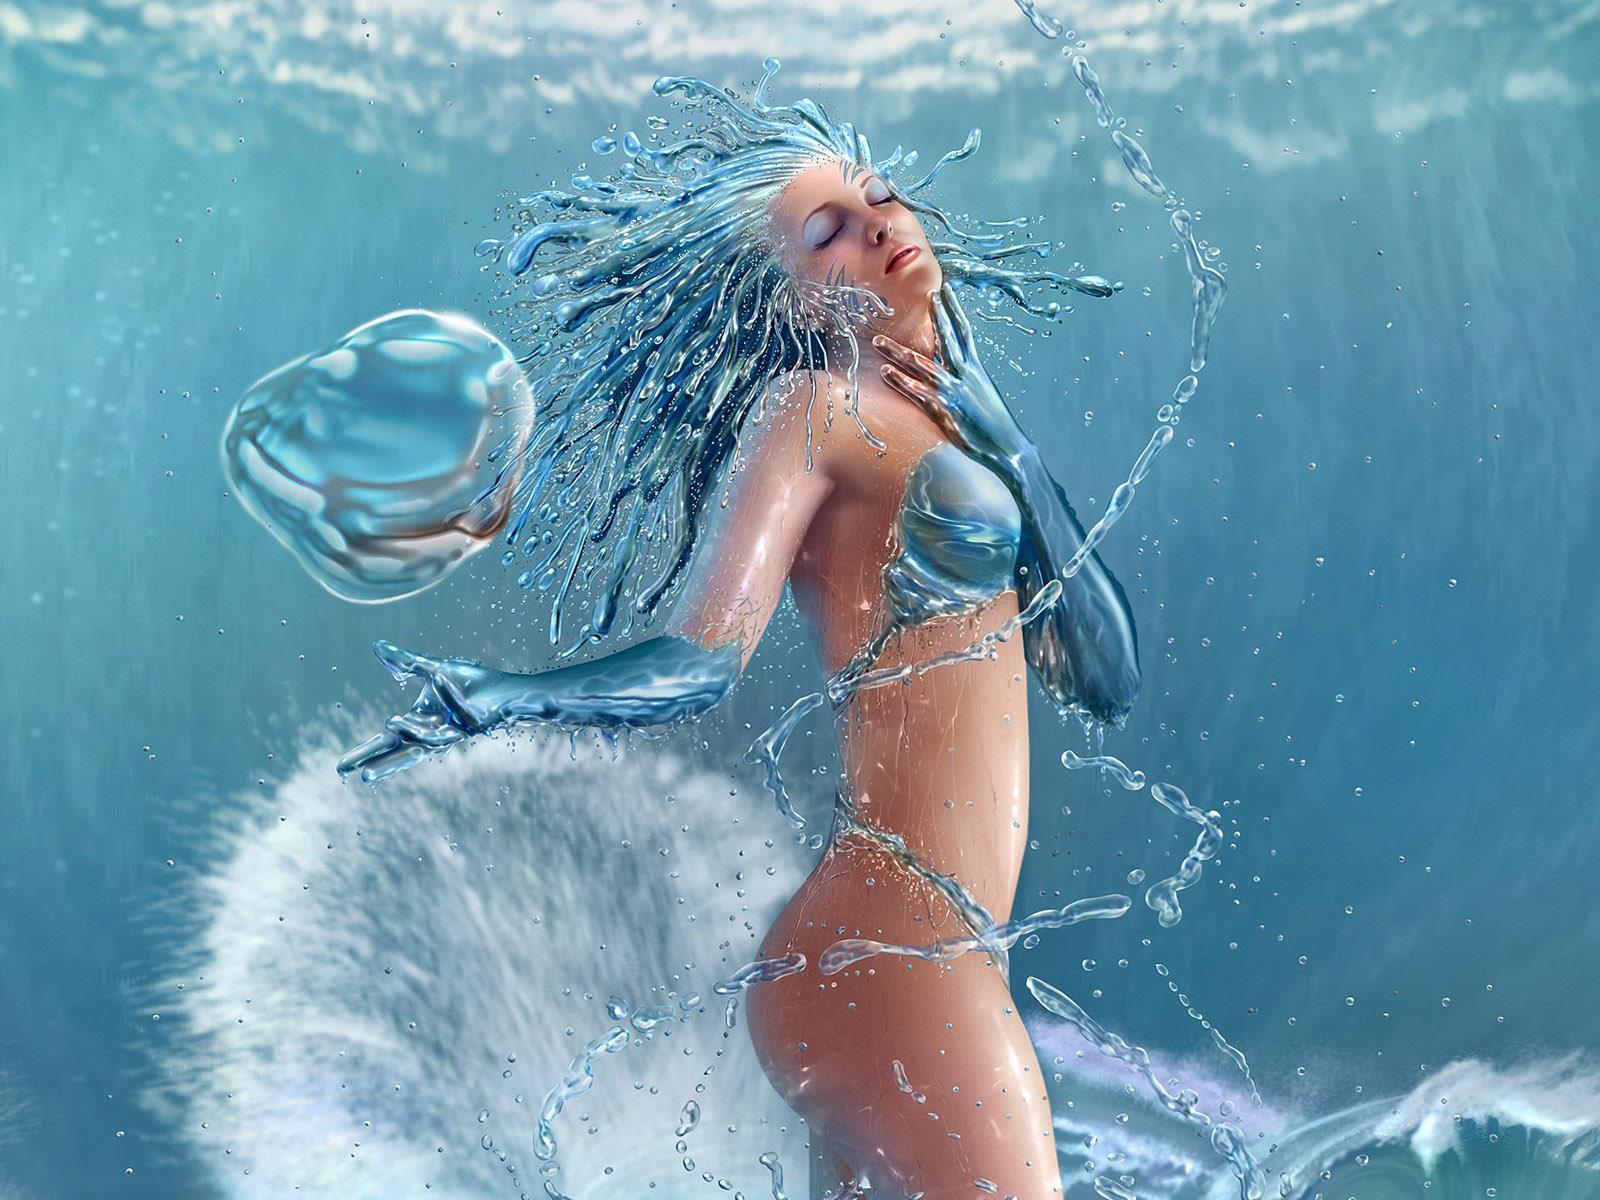 Fantasy Mermaid Art wallpaper